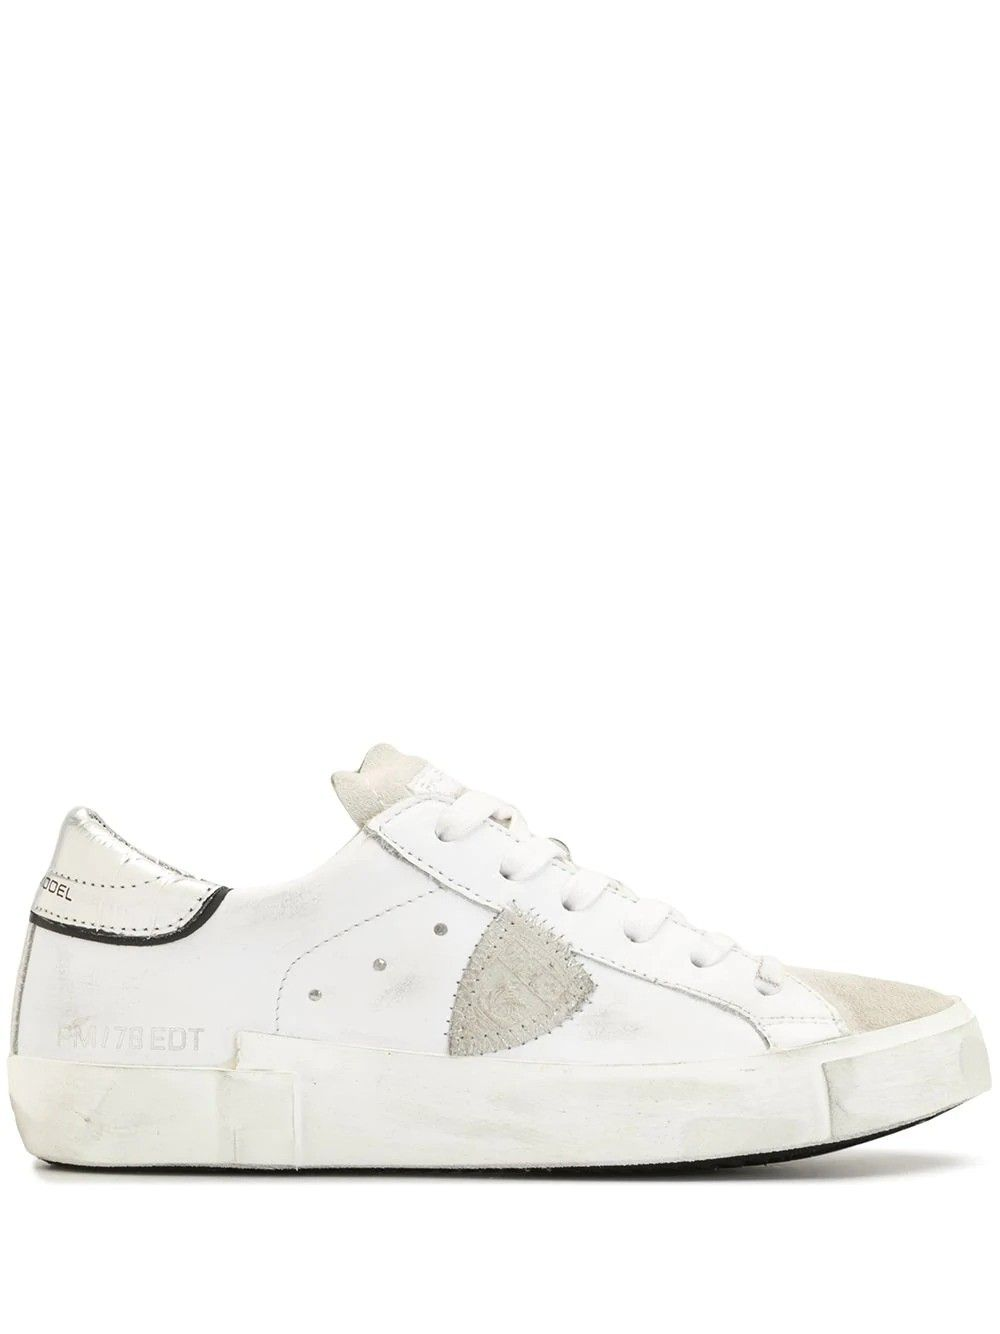 Philippe Model PHILIPPE MODEL WOMEN'S PRLDVC02 WHITE LEATHER SNEAKERS